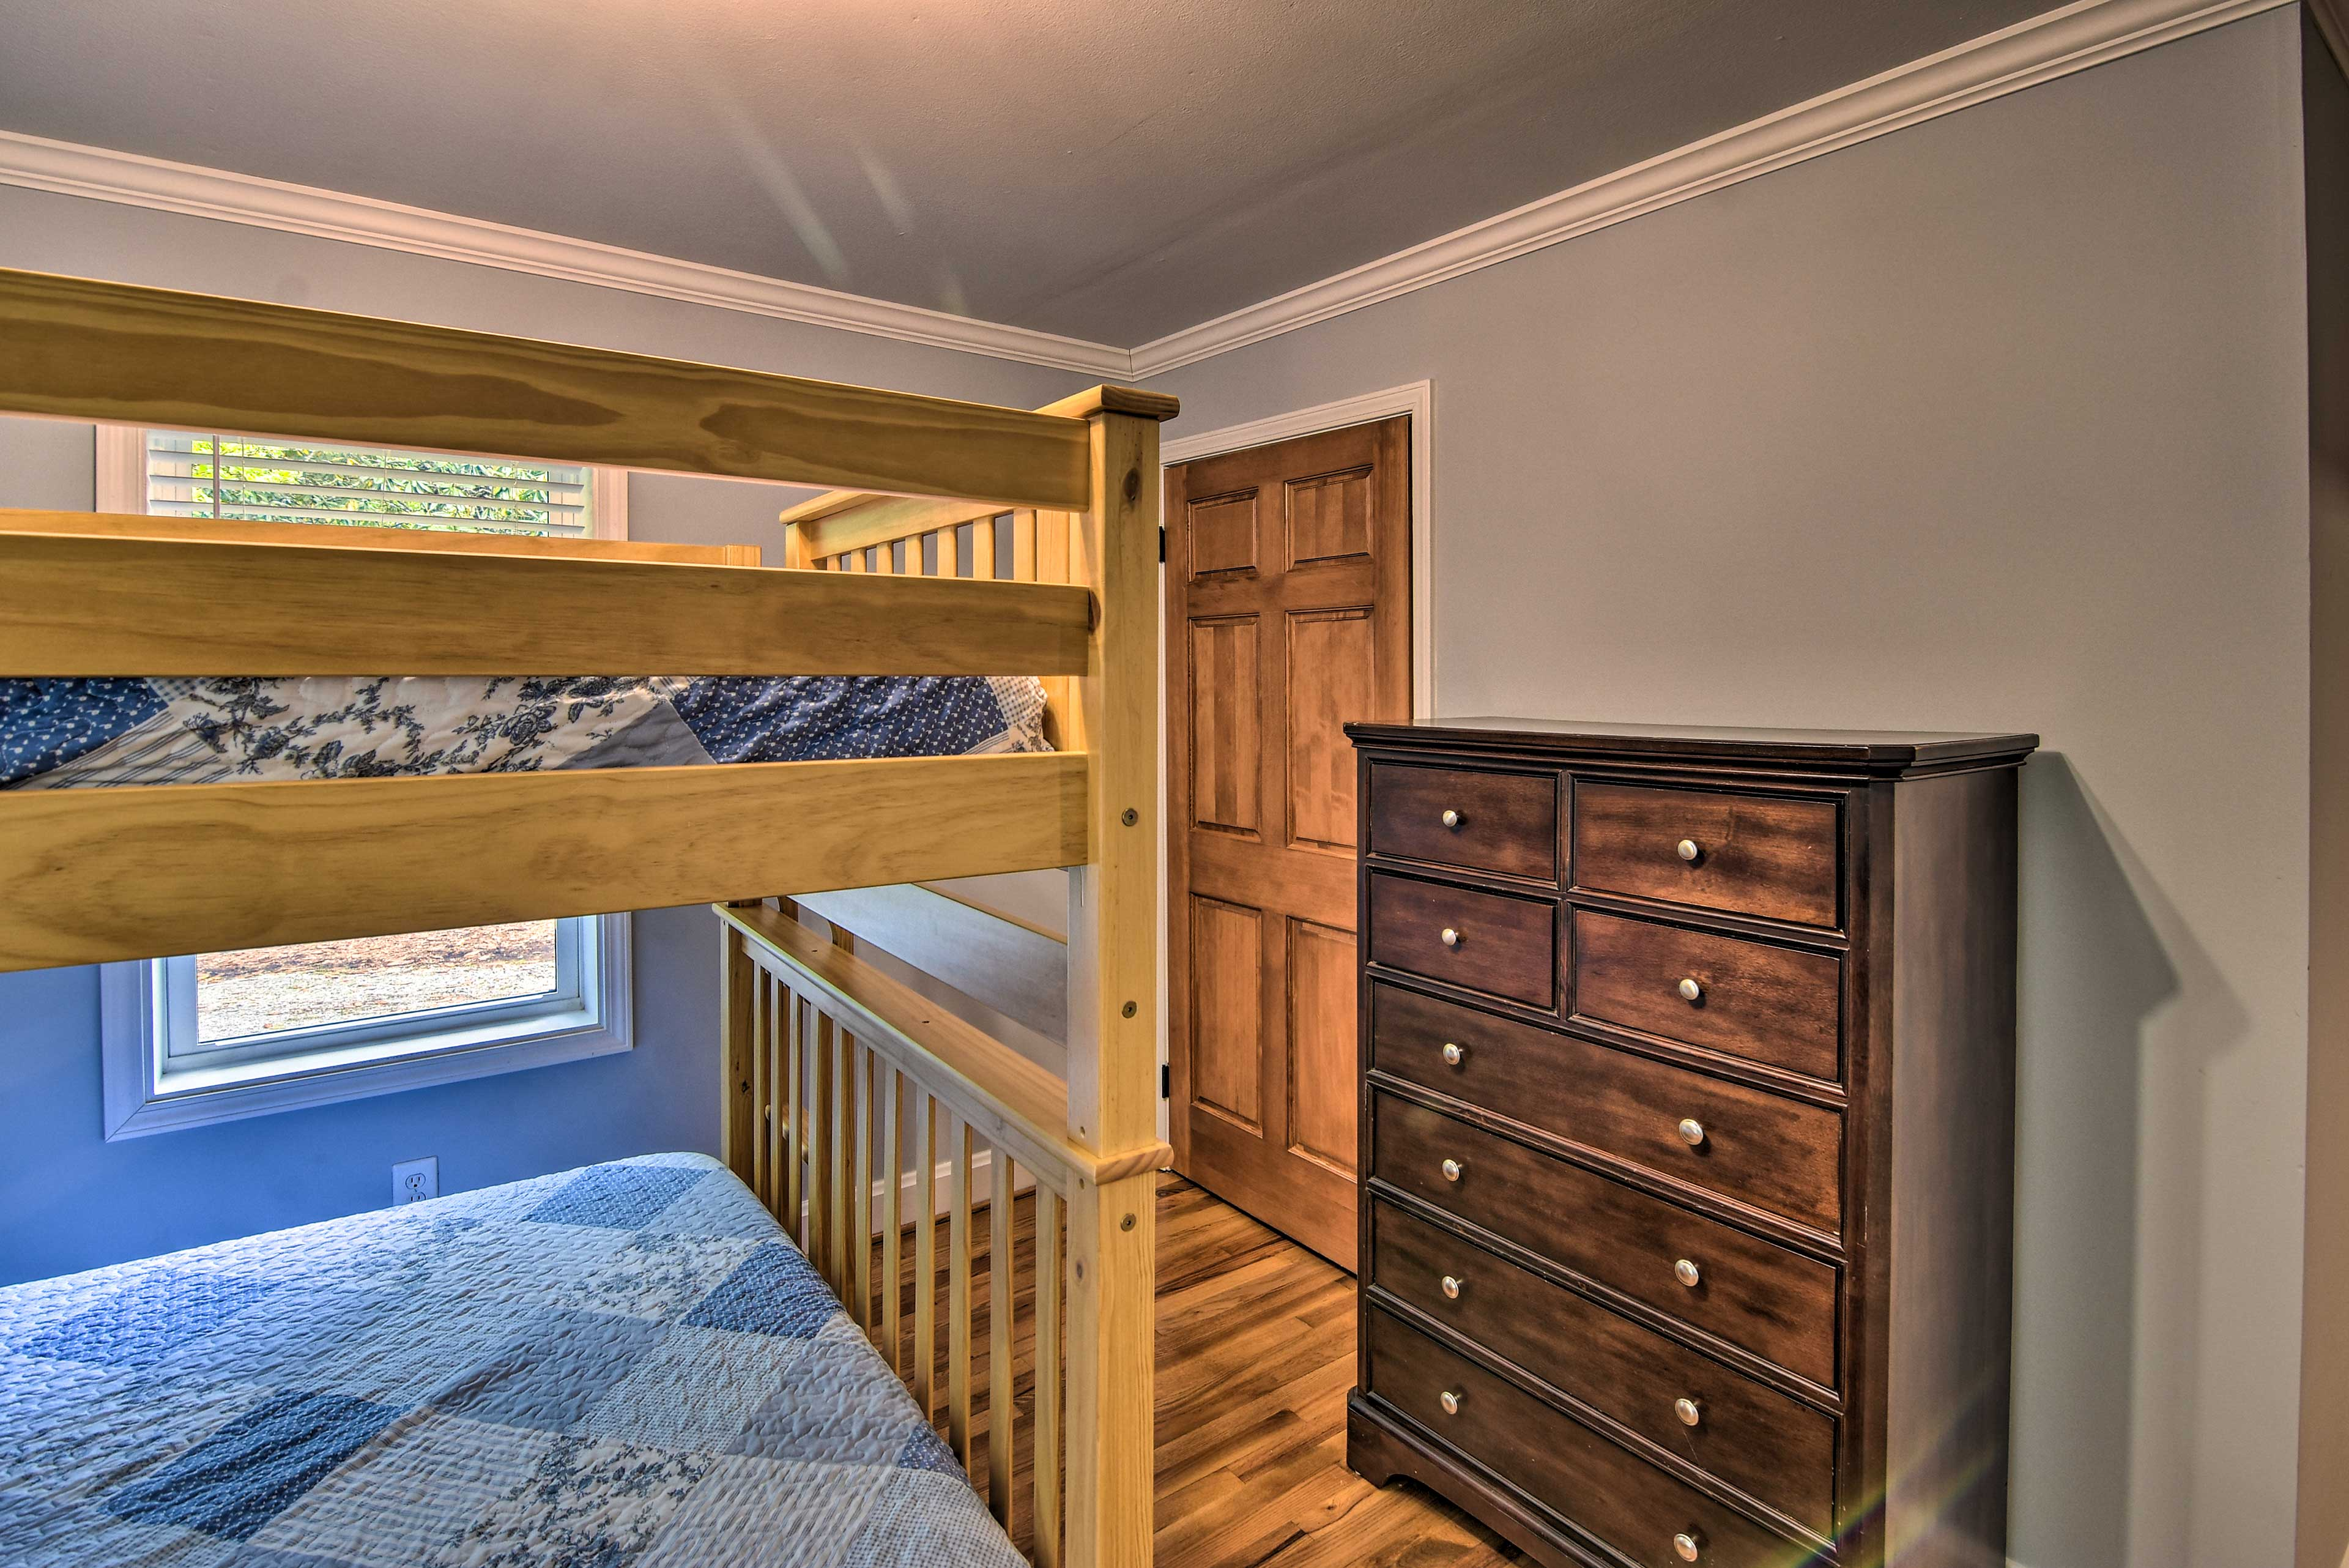 Each full bed can accommodate 2 guests.